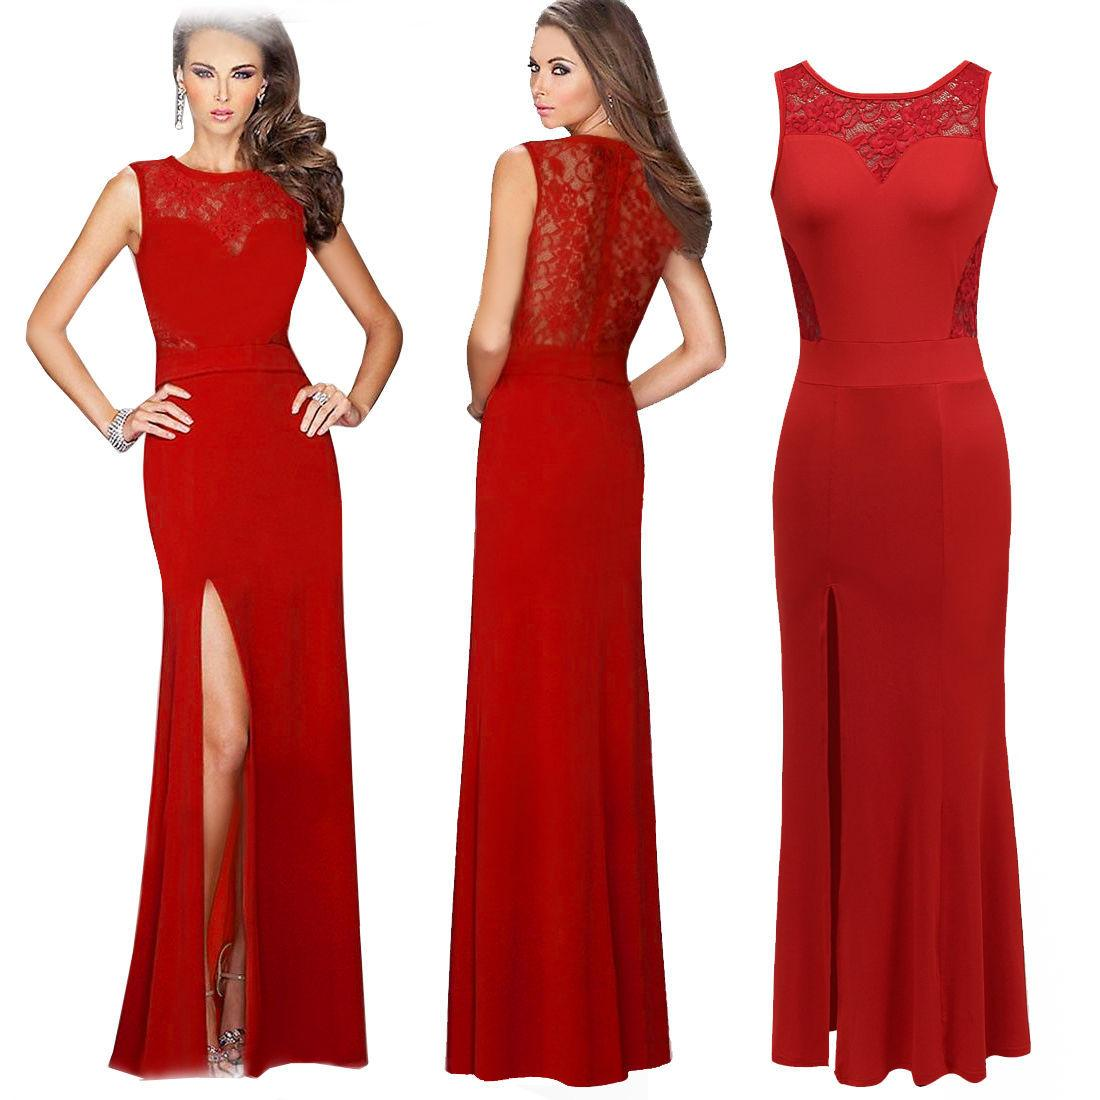 Long red dinner dresses